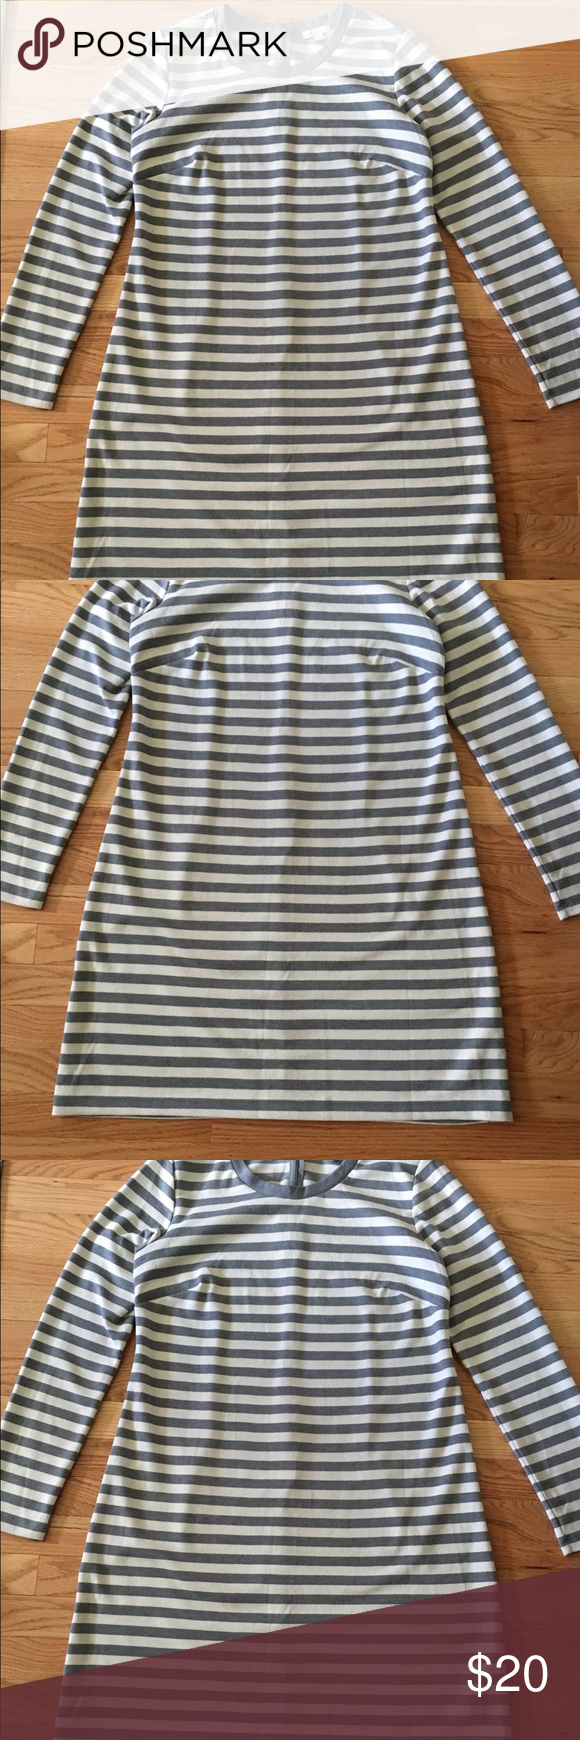 Gap maternity dress maternity dresses conditioning and customer gap maternity dress super cute long sleeve striped gap maternity dress very comfortable ombrellifo Gallery